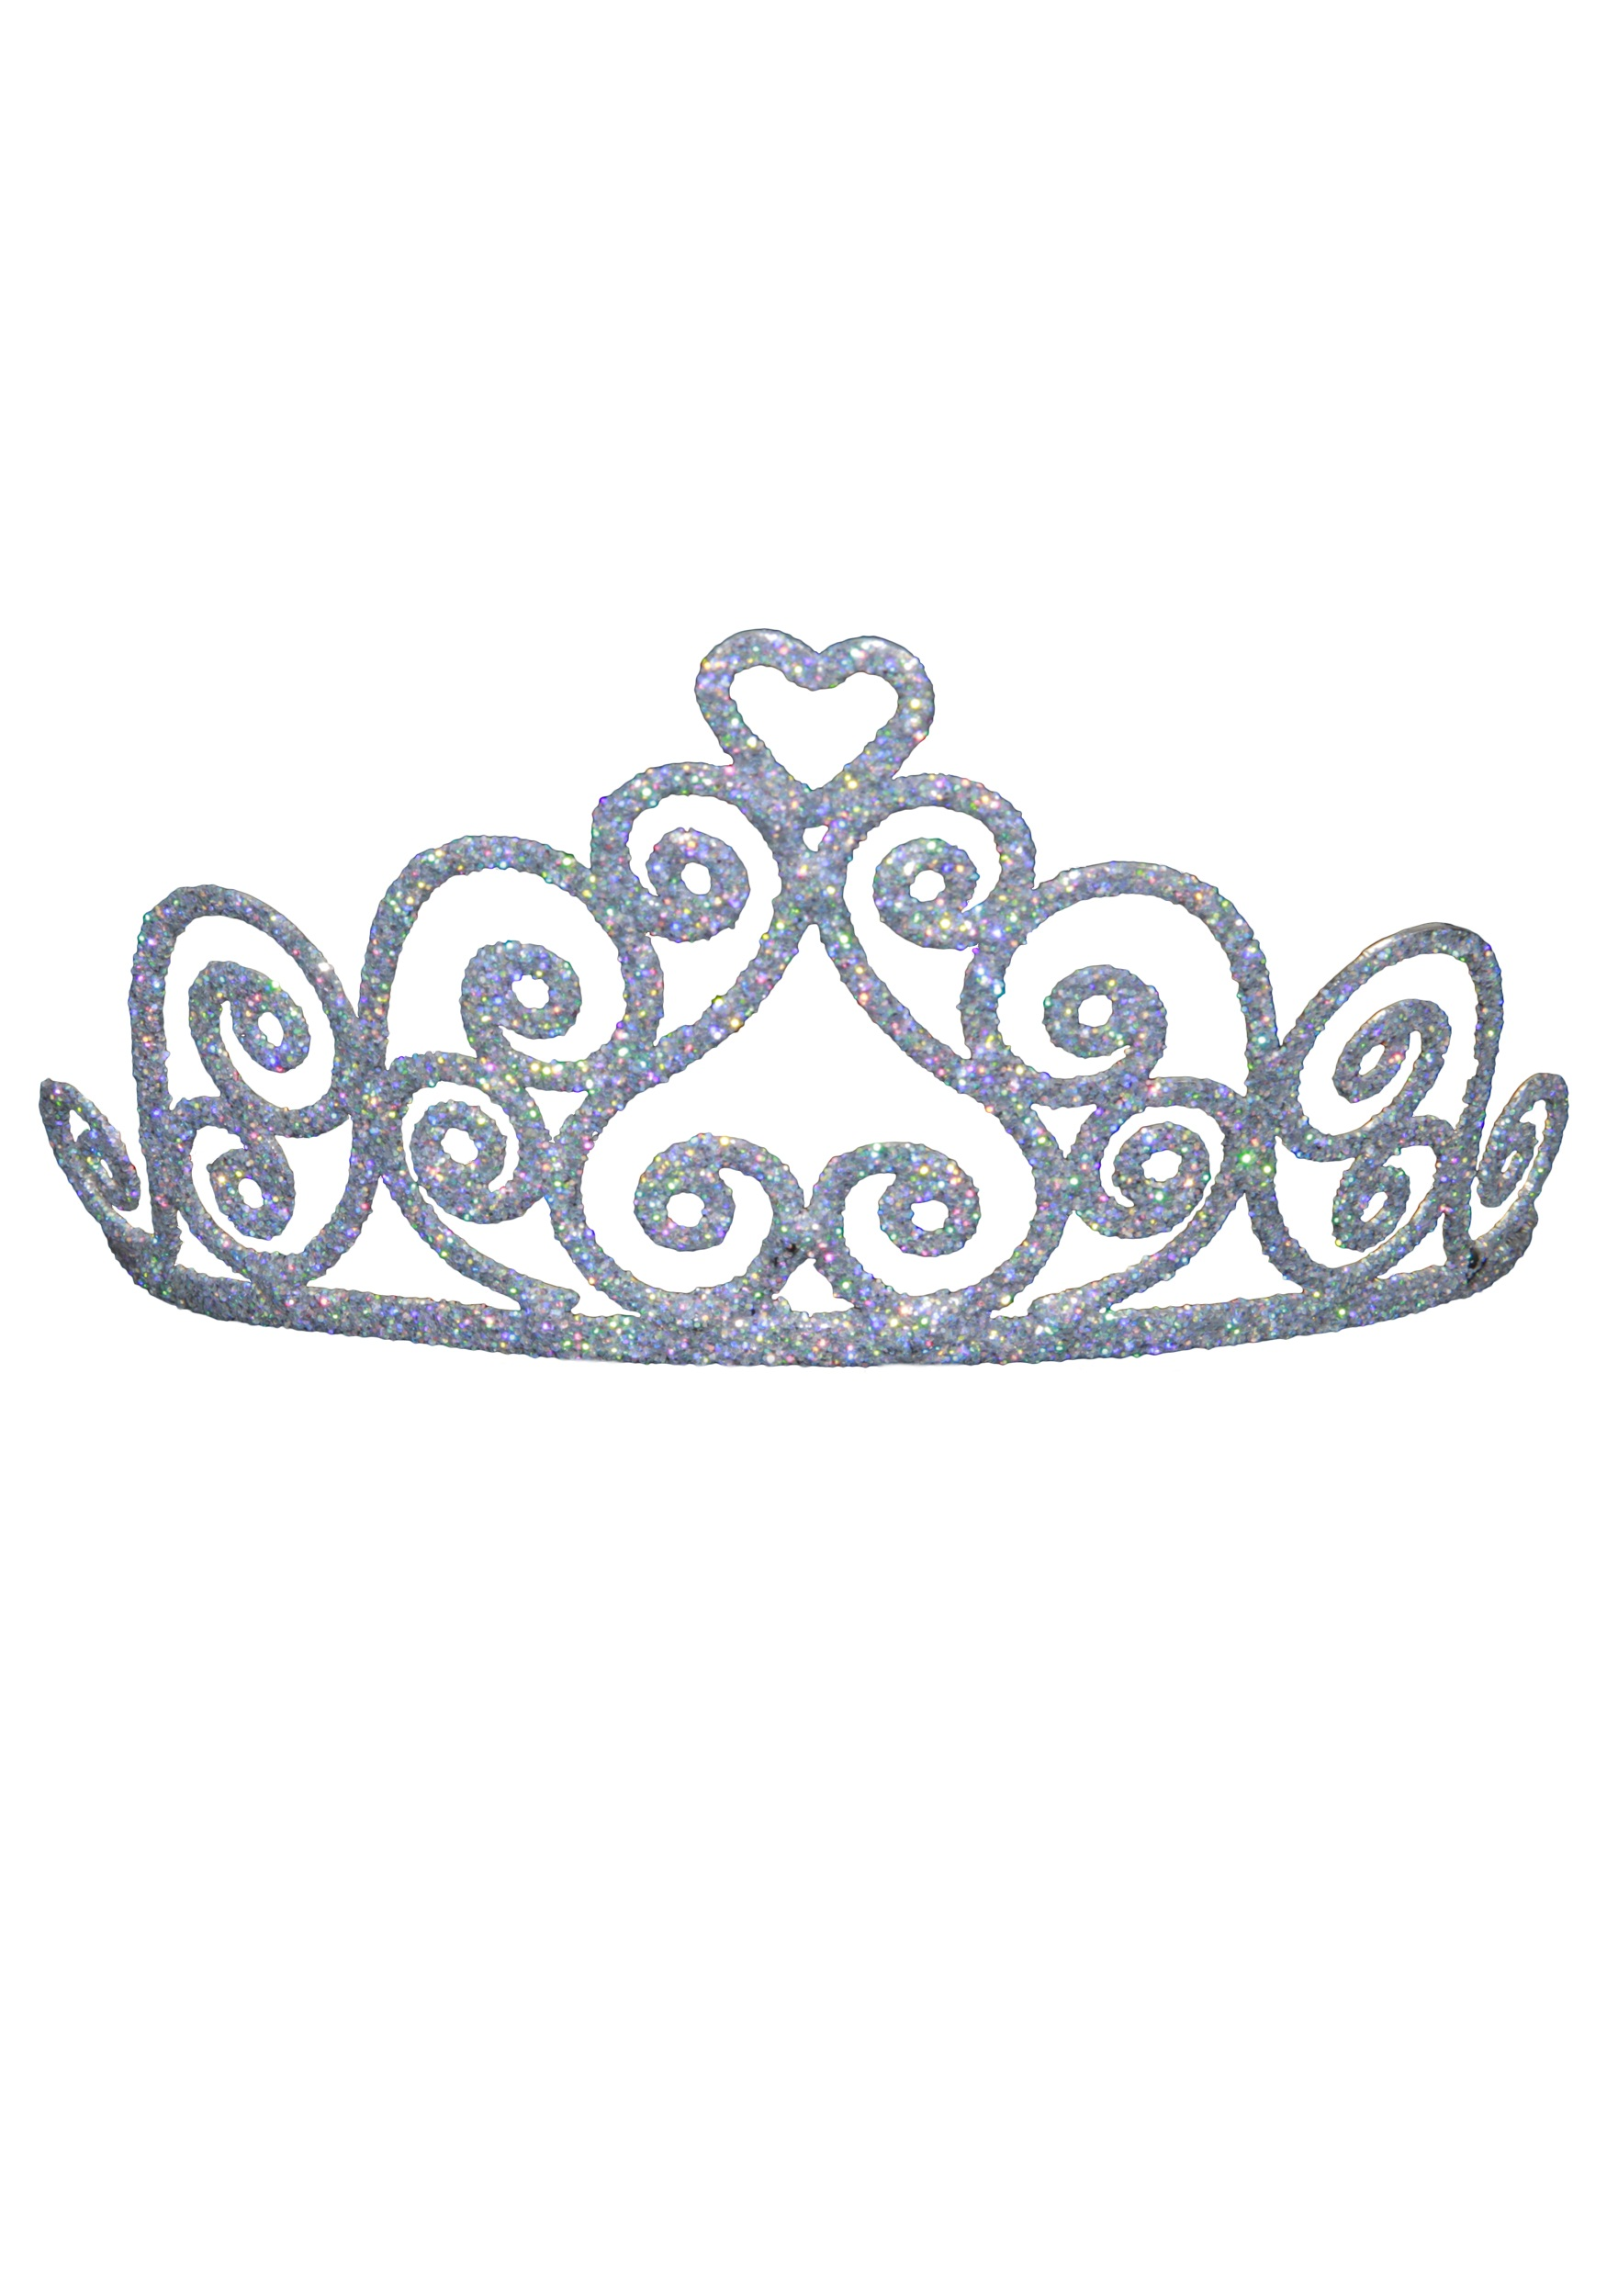 Pink Queen Crown Princess Crownpng Clipart Free Clip Art Images